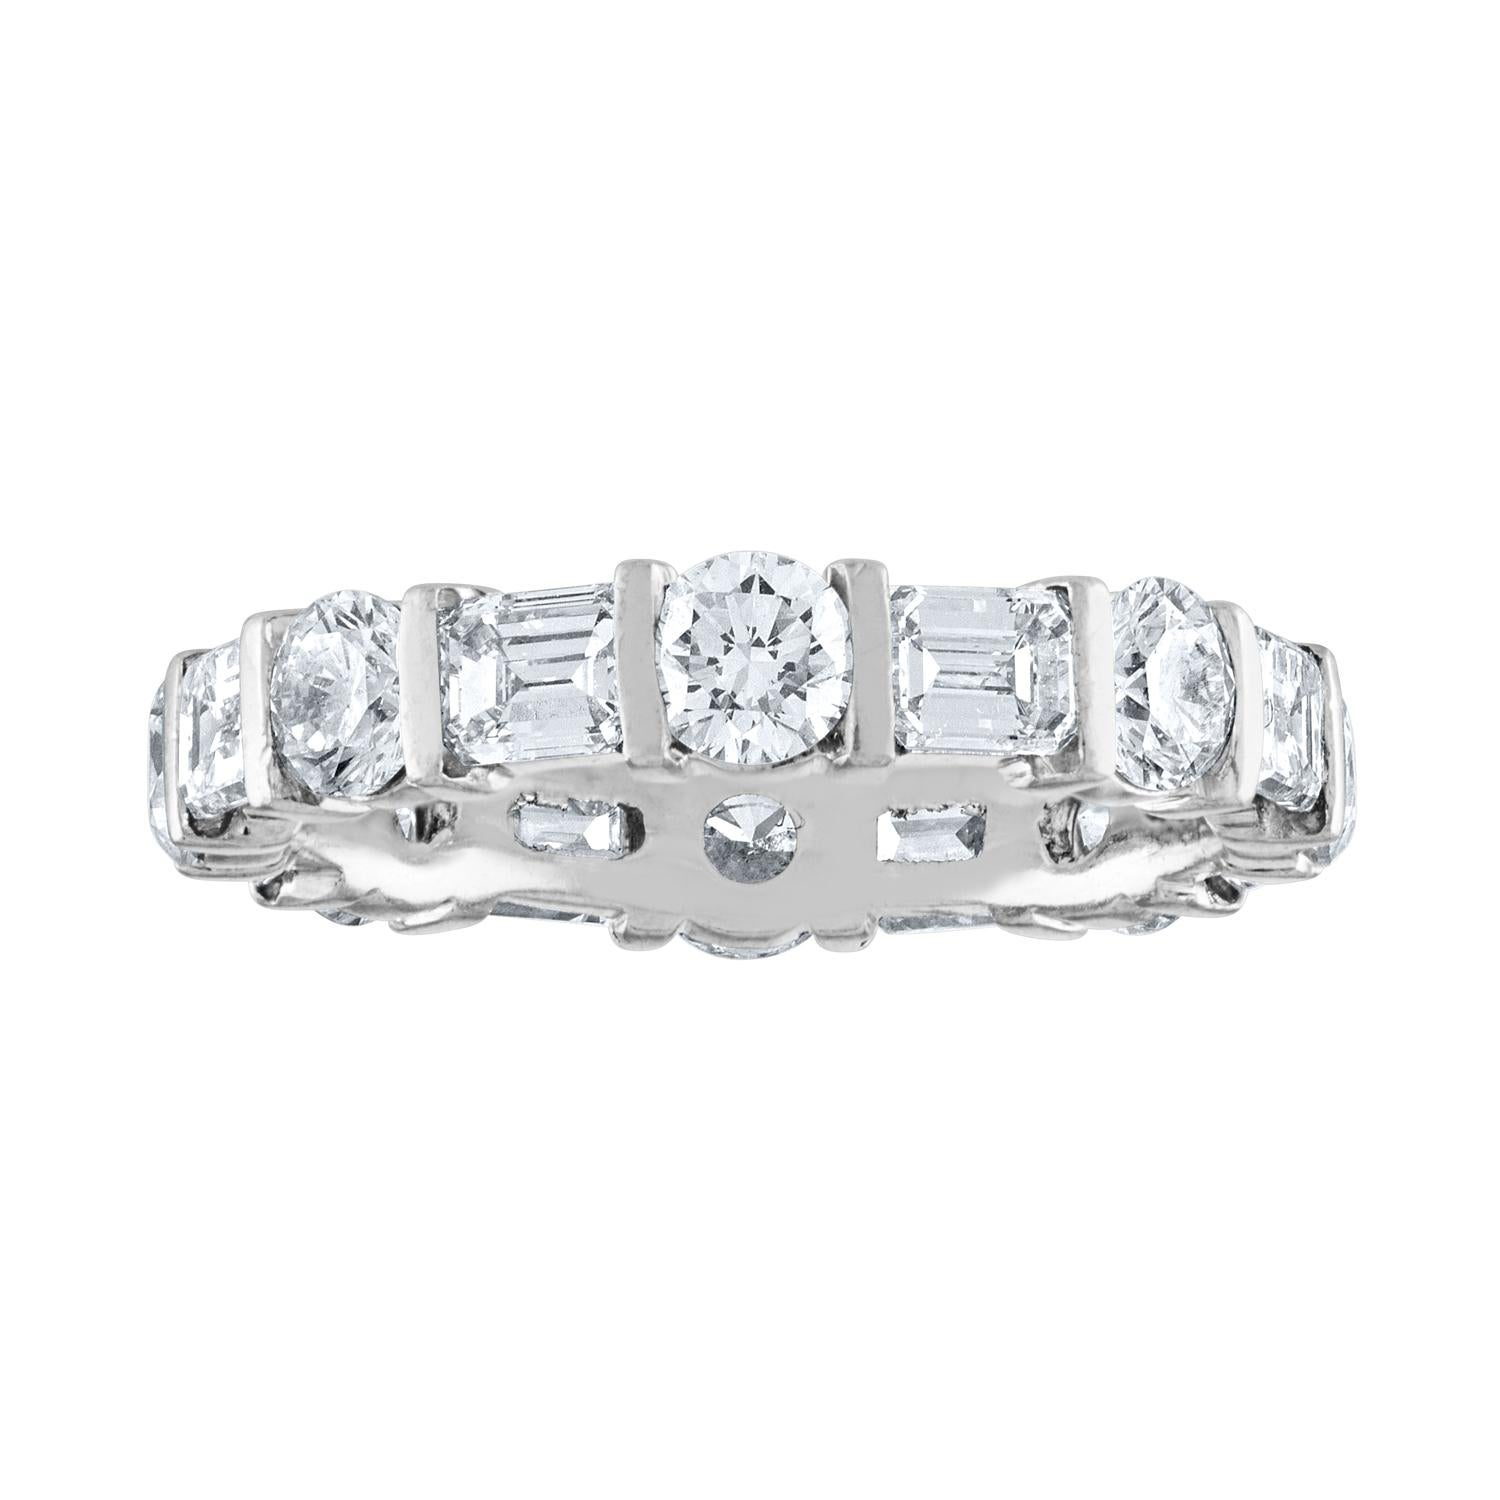 4.25 Carat Round and Emerald Cut Diamond Gold Eternity Band Ring